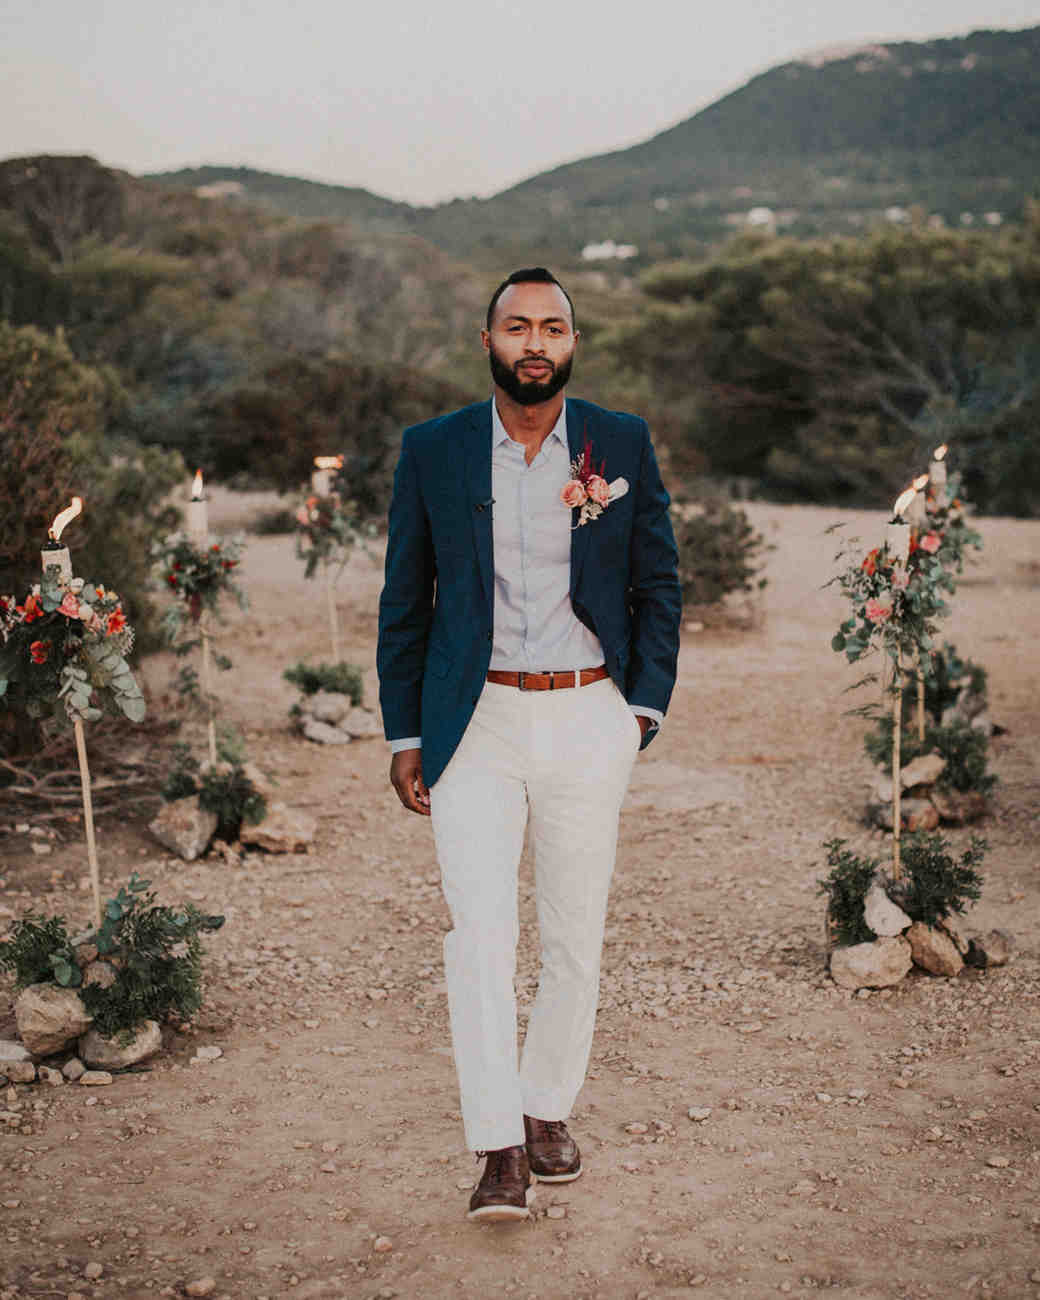 groom stands in front of floral lined isle